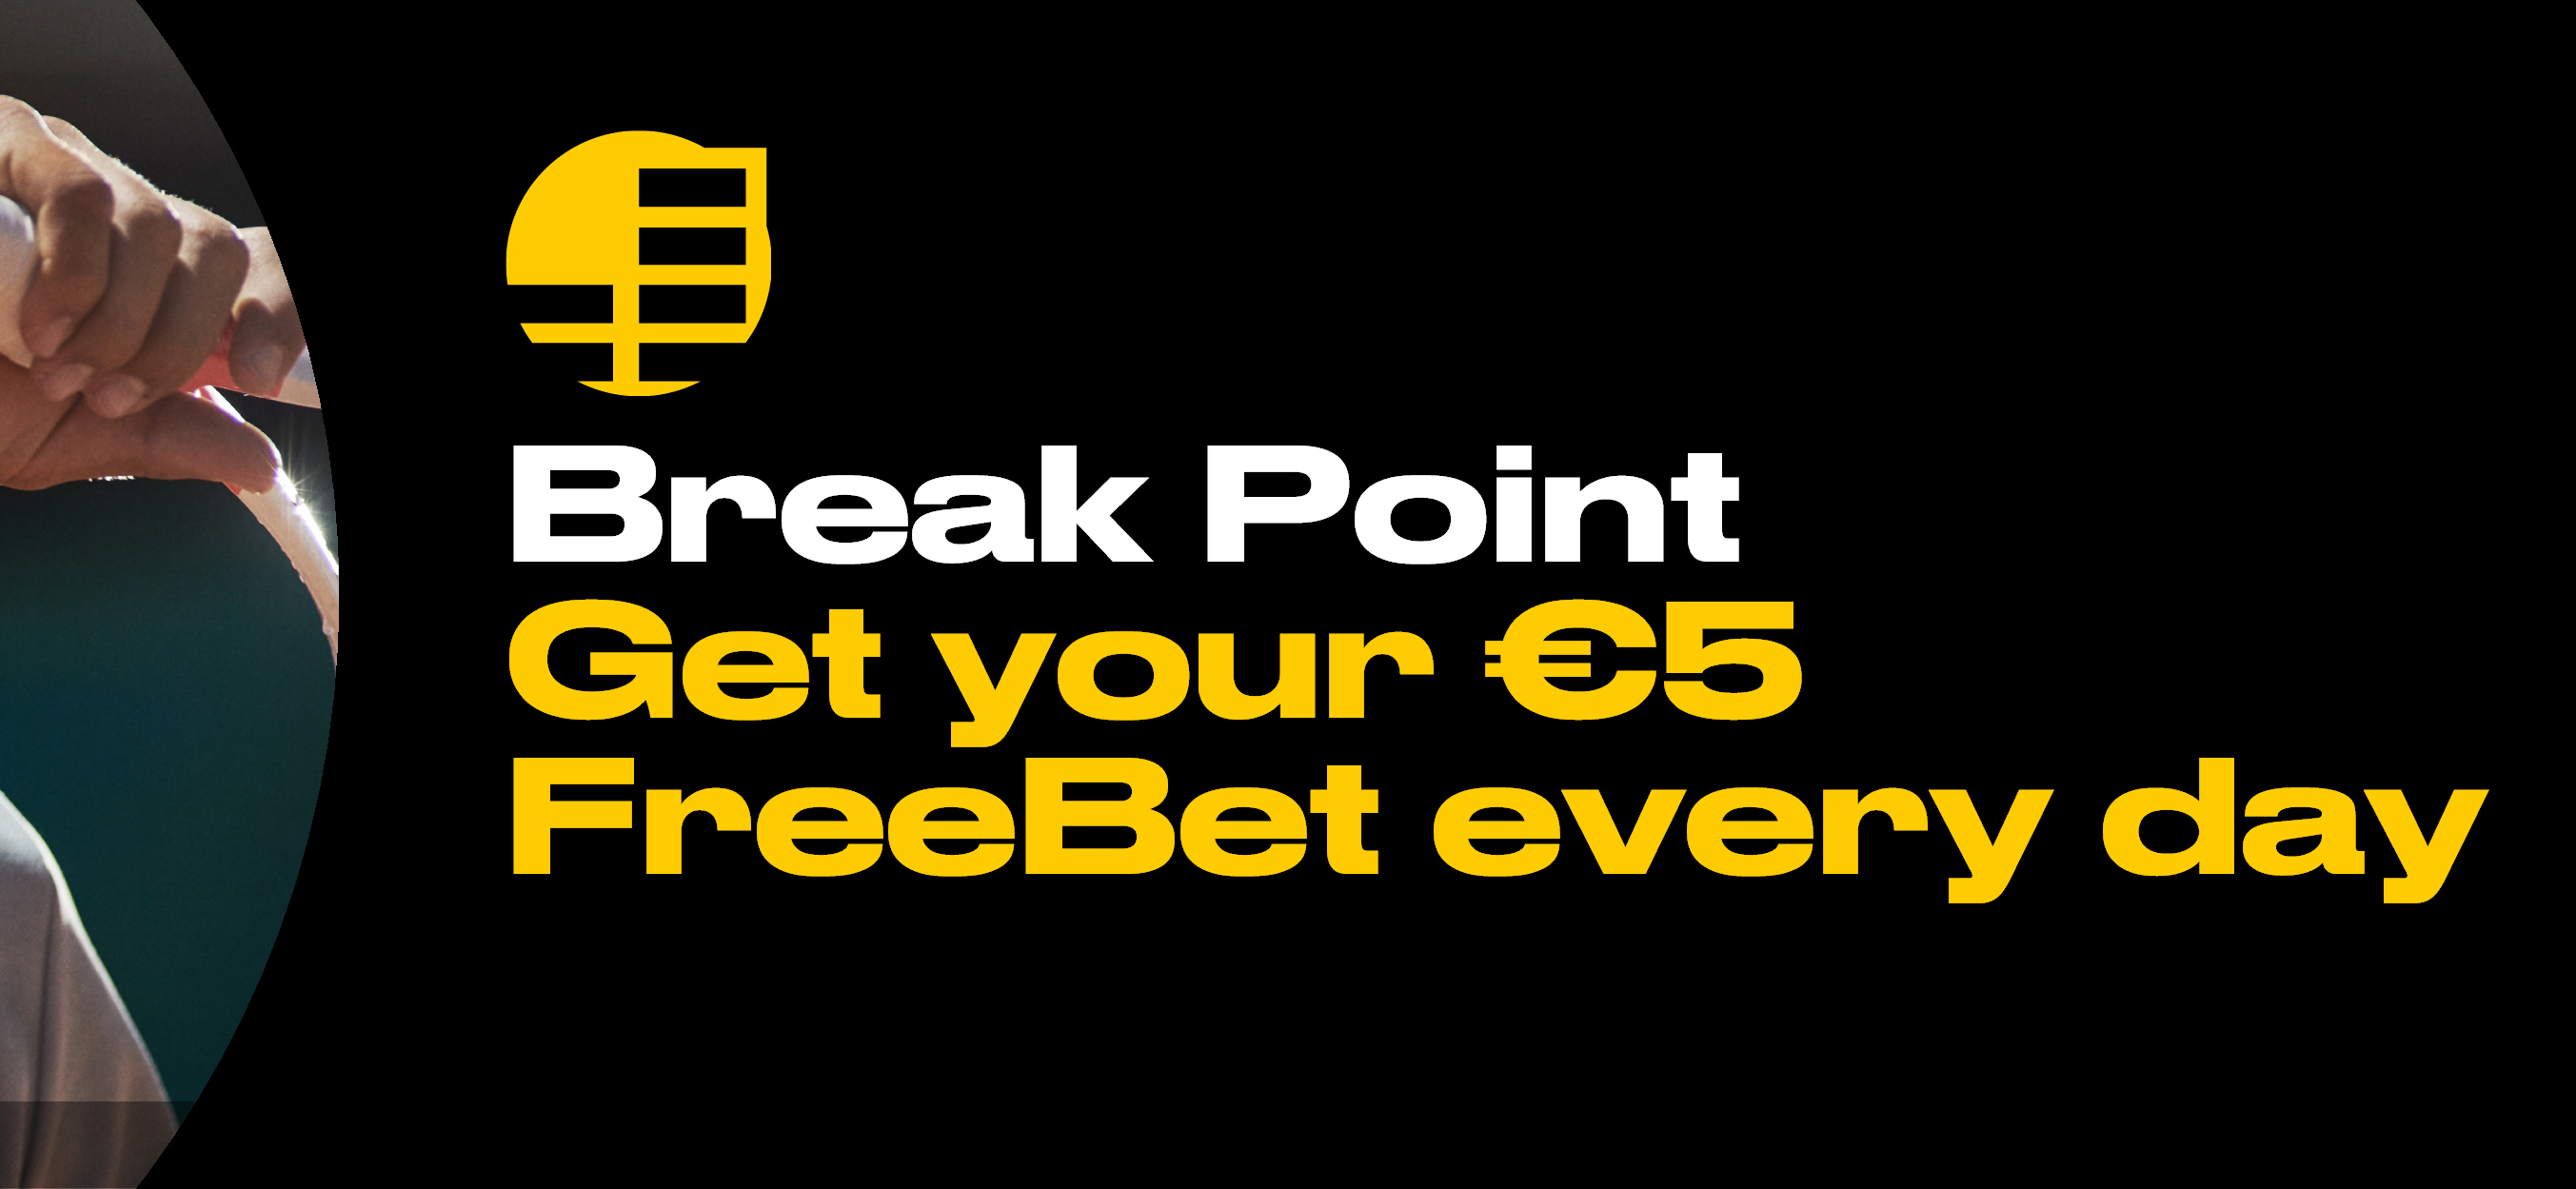 Free bet of five EUR daily can be yours with Bwin bookmaker!